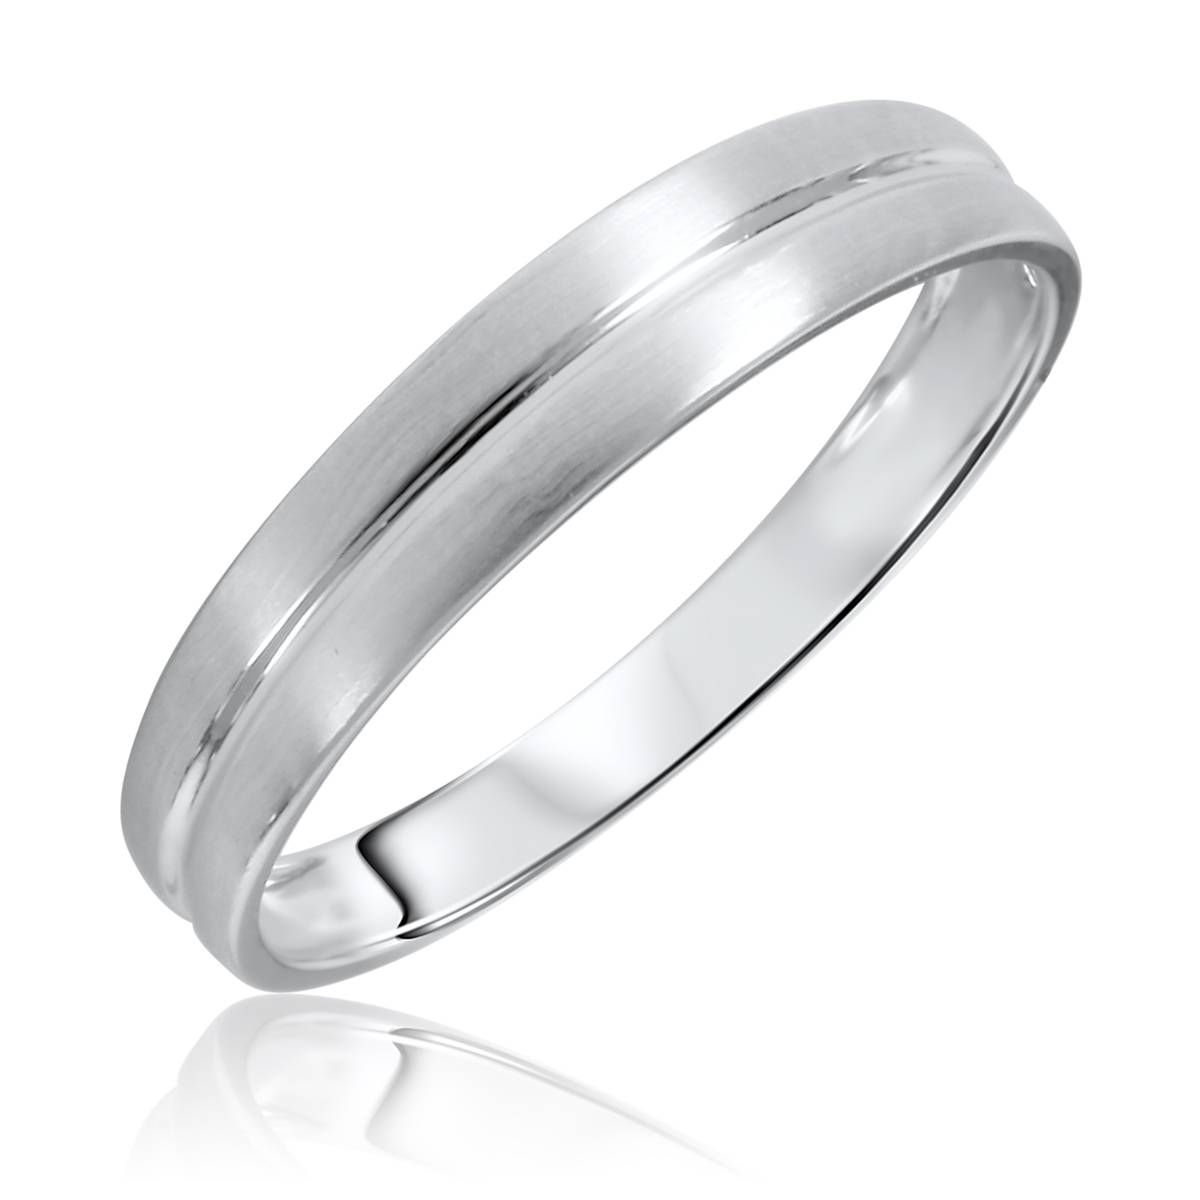 Mens Wedding Band 14K White Gold With White Gold Wedding Bands Rings (View 12 of 15)